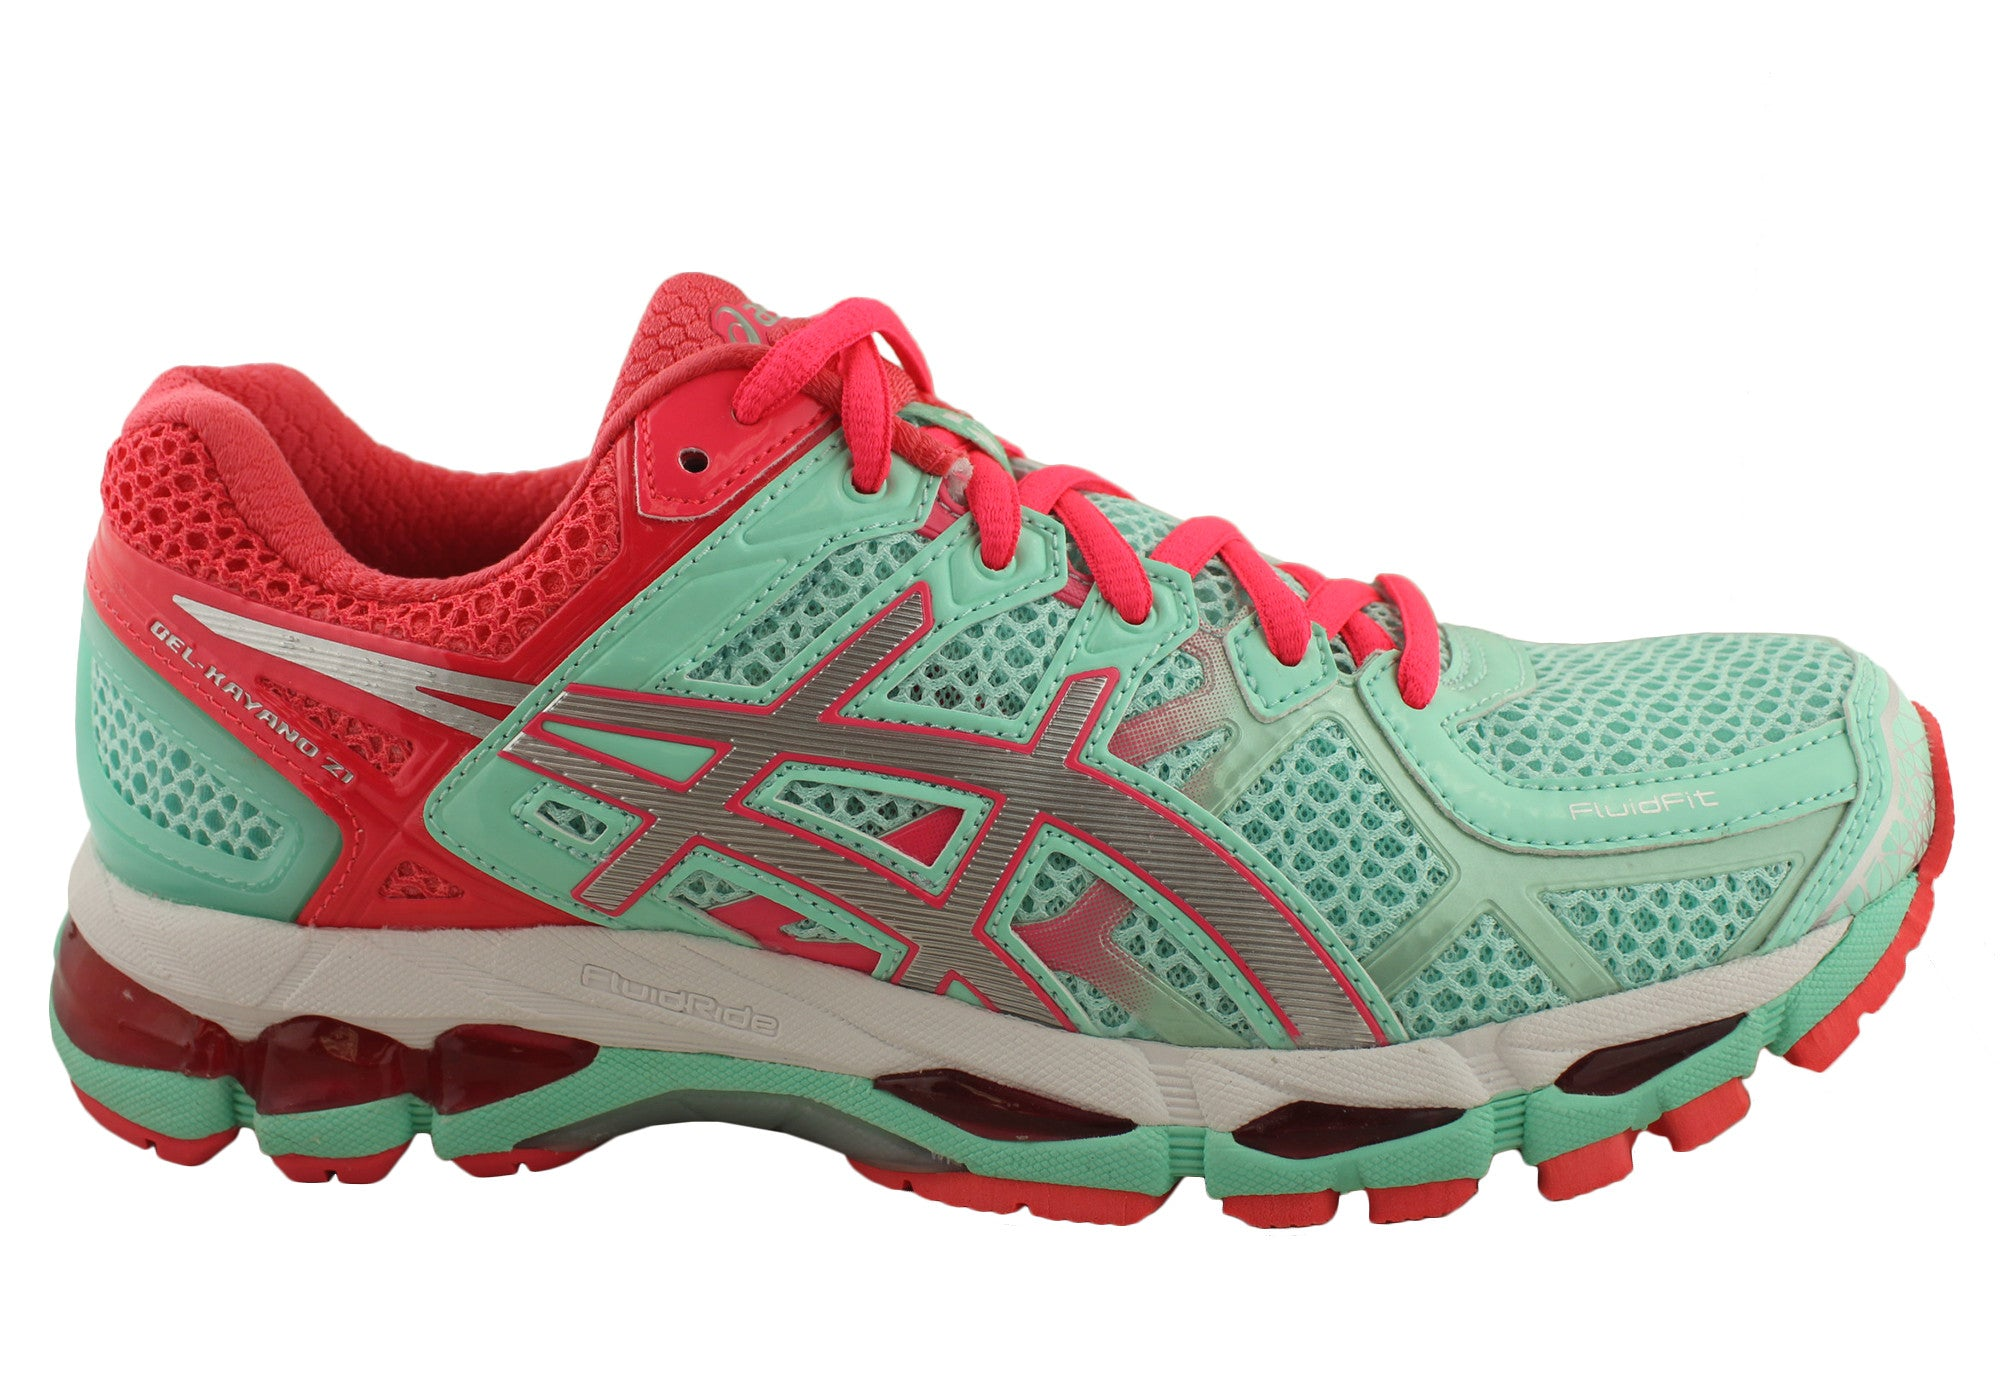 Asics Gel Kayano 21 Popular